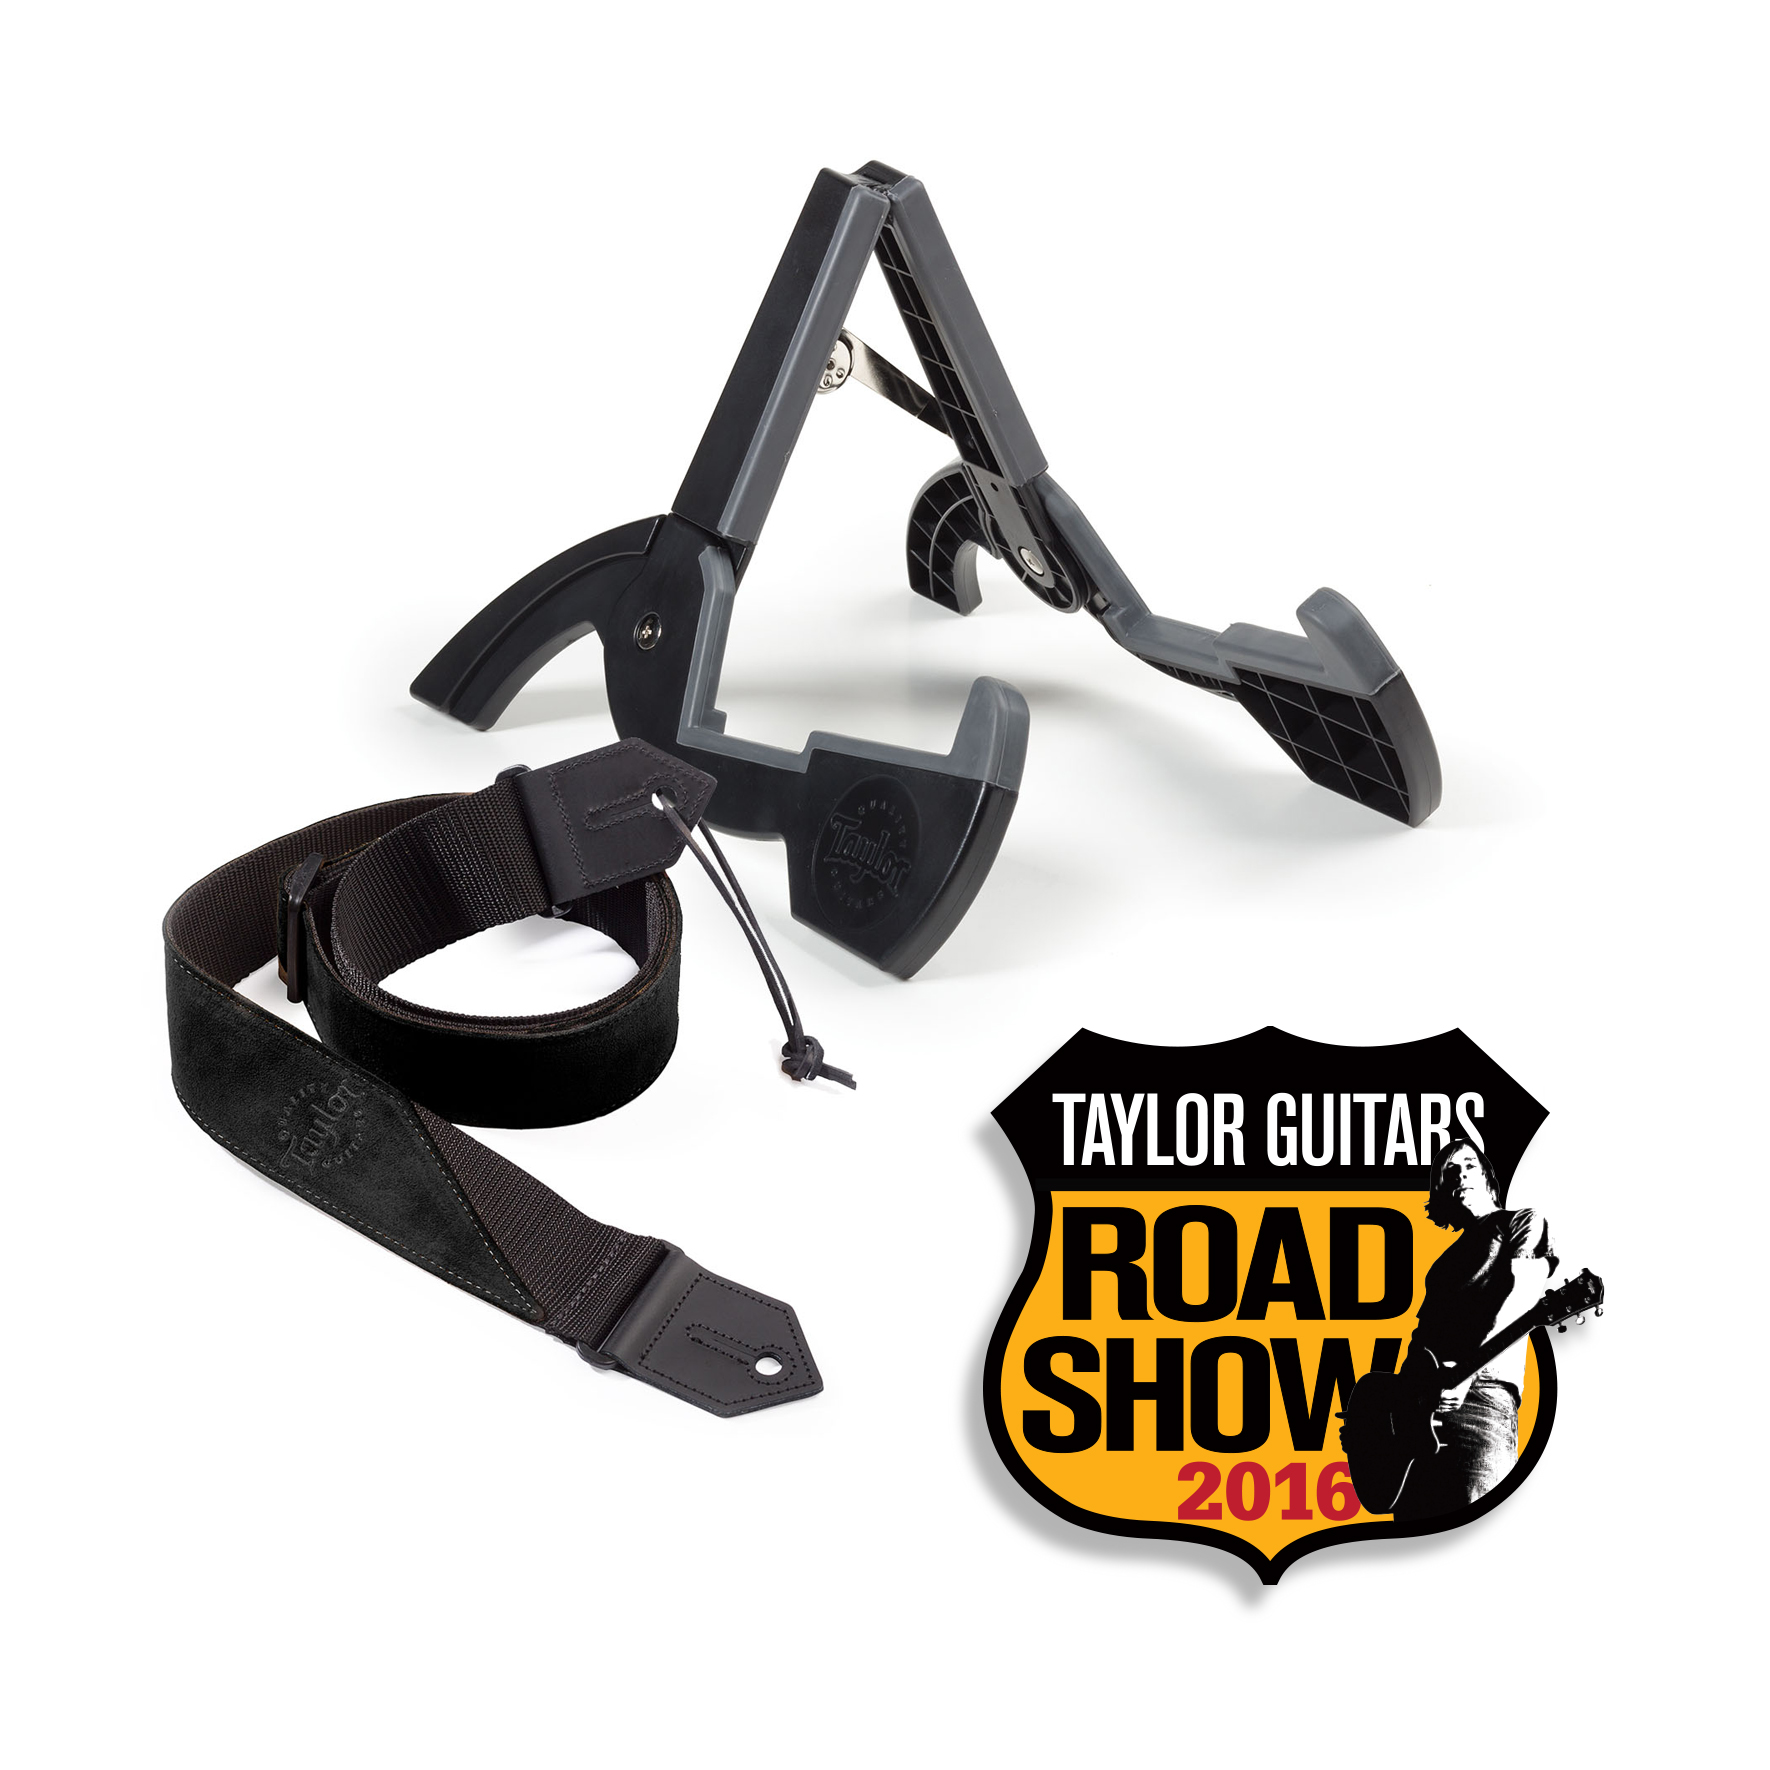 Get a Free Taylor Guitar Stand & Strap Buy a Taylor 100 Series guitar or higher at any Road Show, Find Your Fit or other select Taylor events now through December 31, 2016 and get a free Taylor travel stand and guitar strap Stand & Strap design may vary